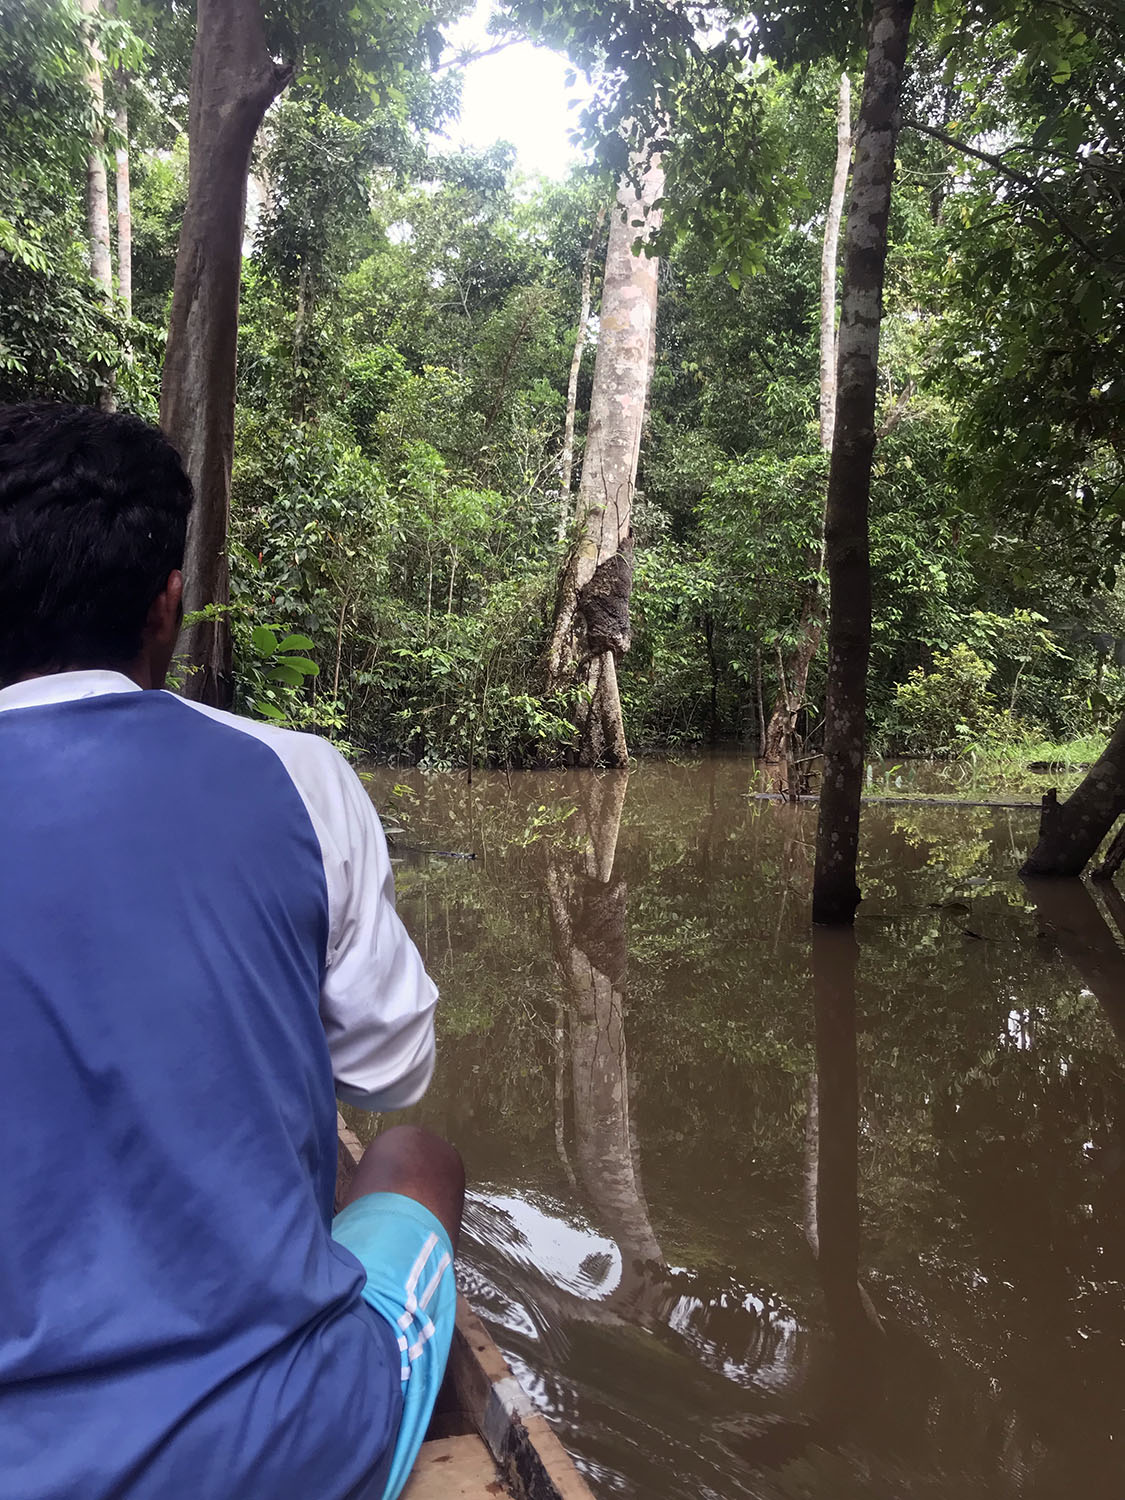 local guide in a small wooden canoe floating the flooded jungle